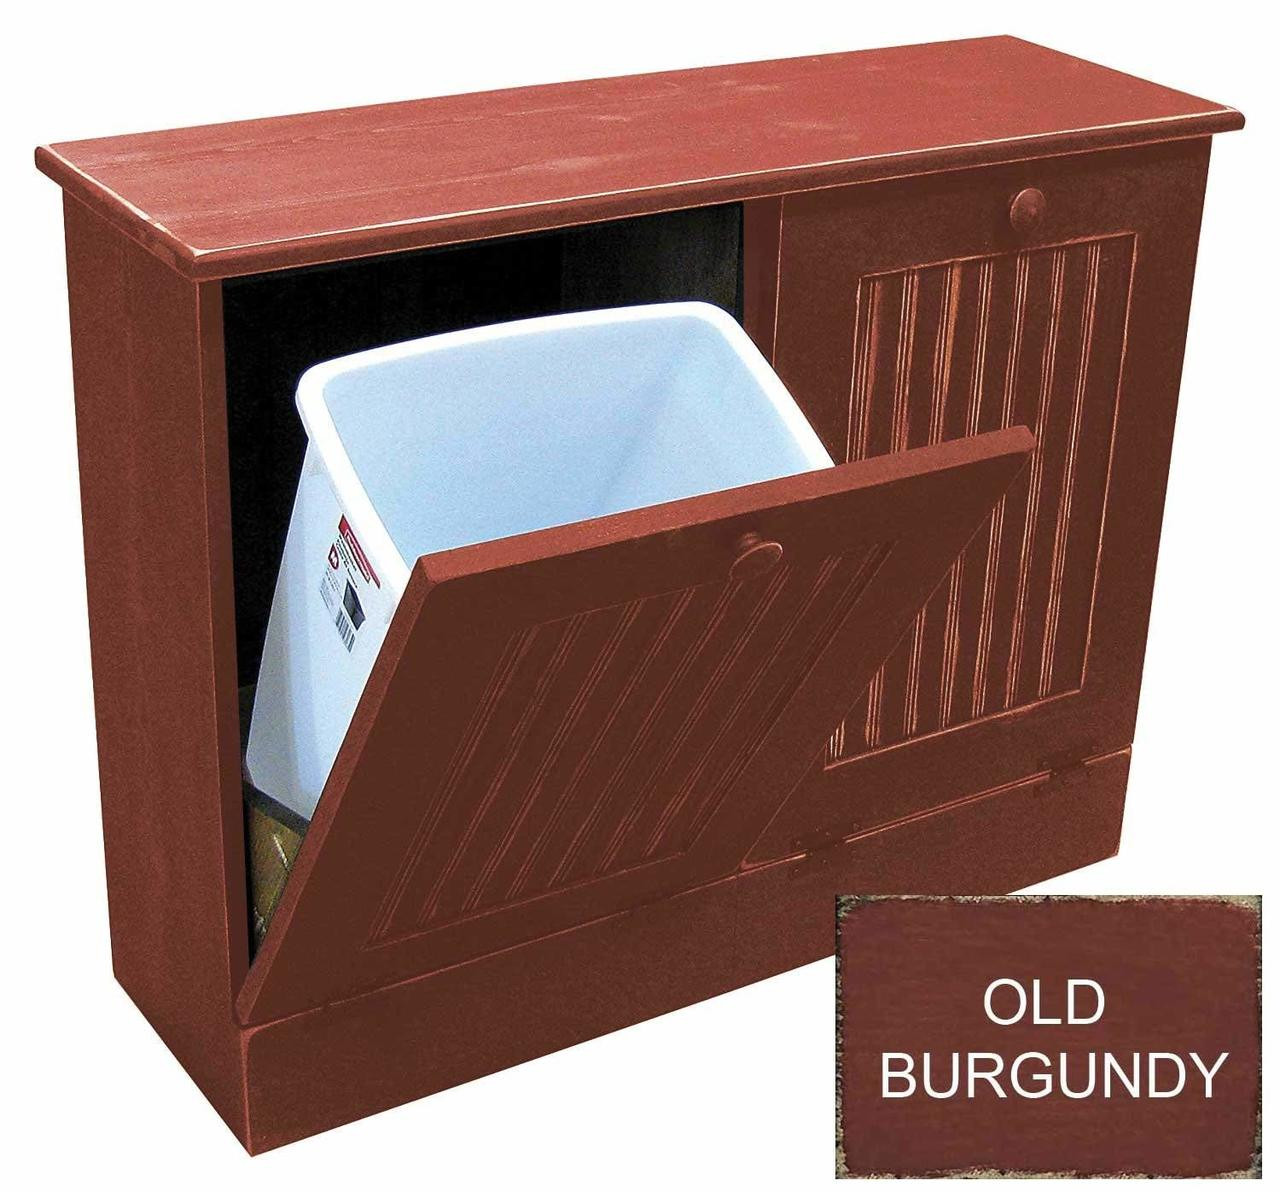 OLD BURGUNDY SMALL